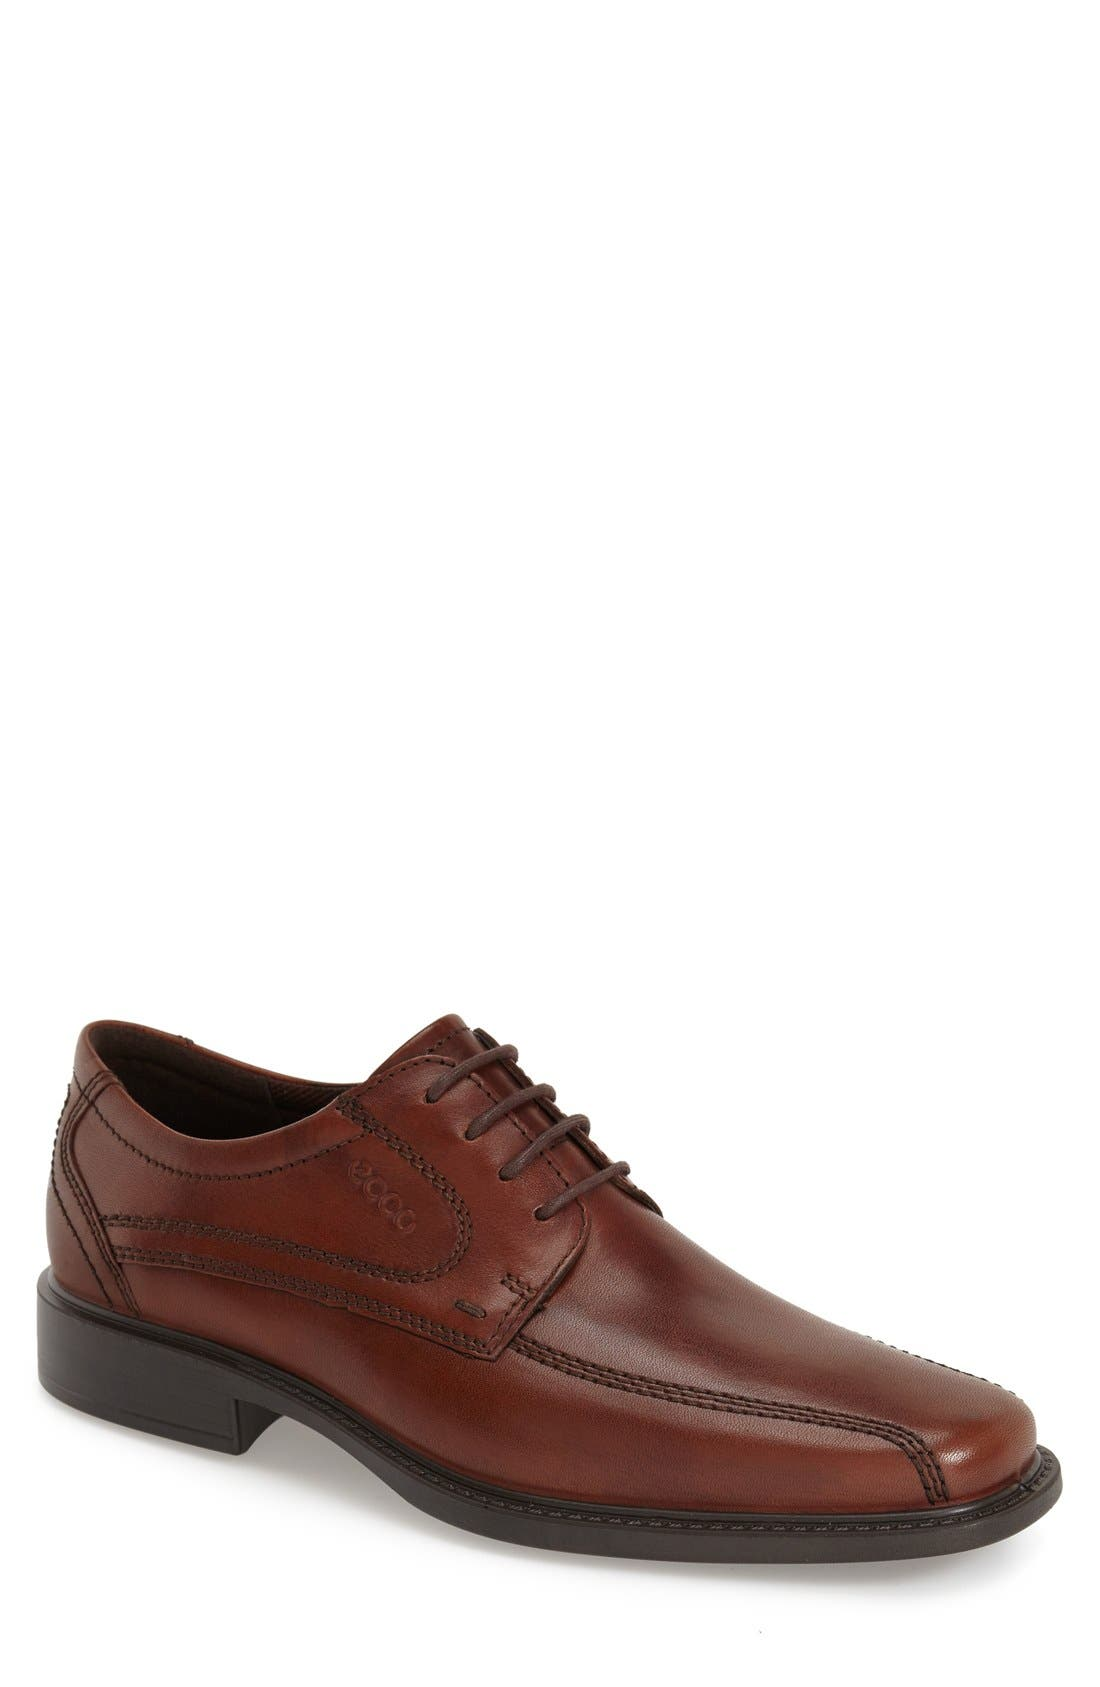 Main Image - ECCO 'New Jersey' Bicycle Toe Oxford